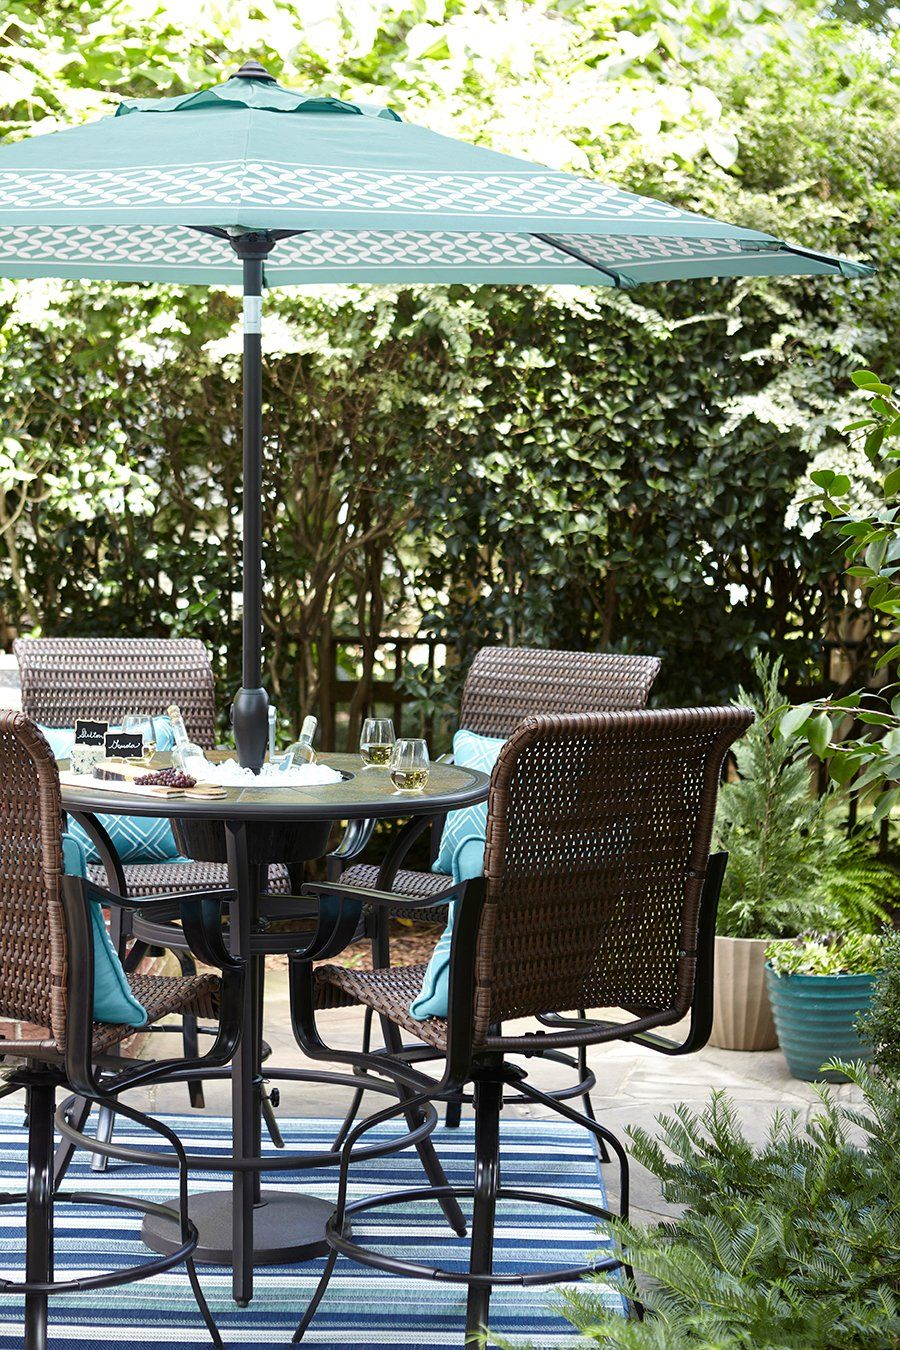 A Built In Ice Bucket Makes This Outdoor Table The Ultimate Patio